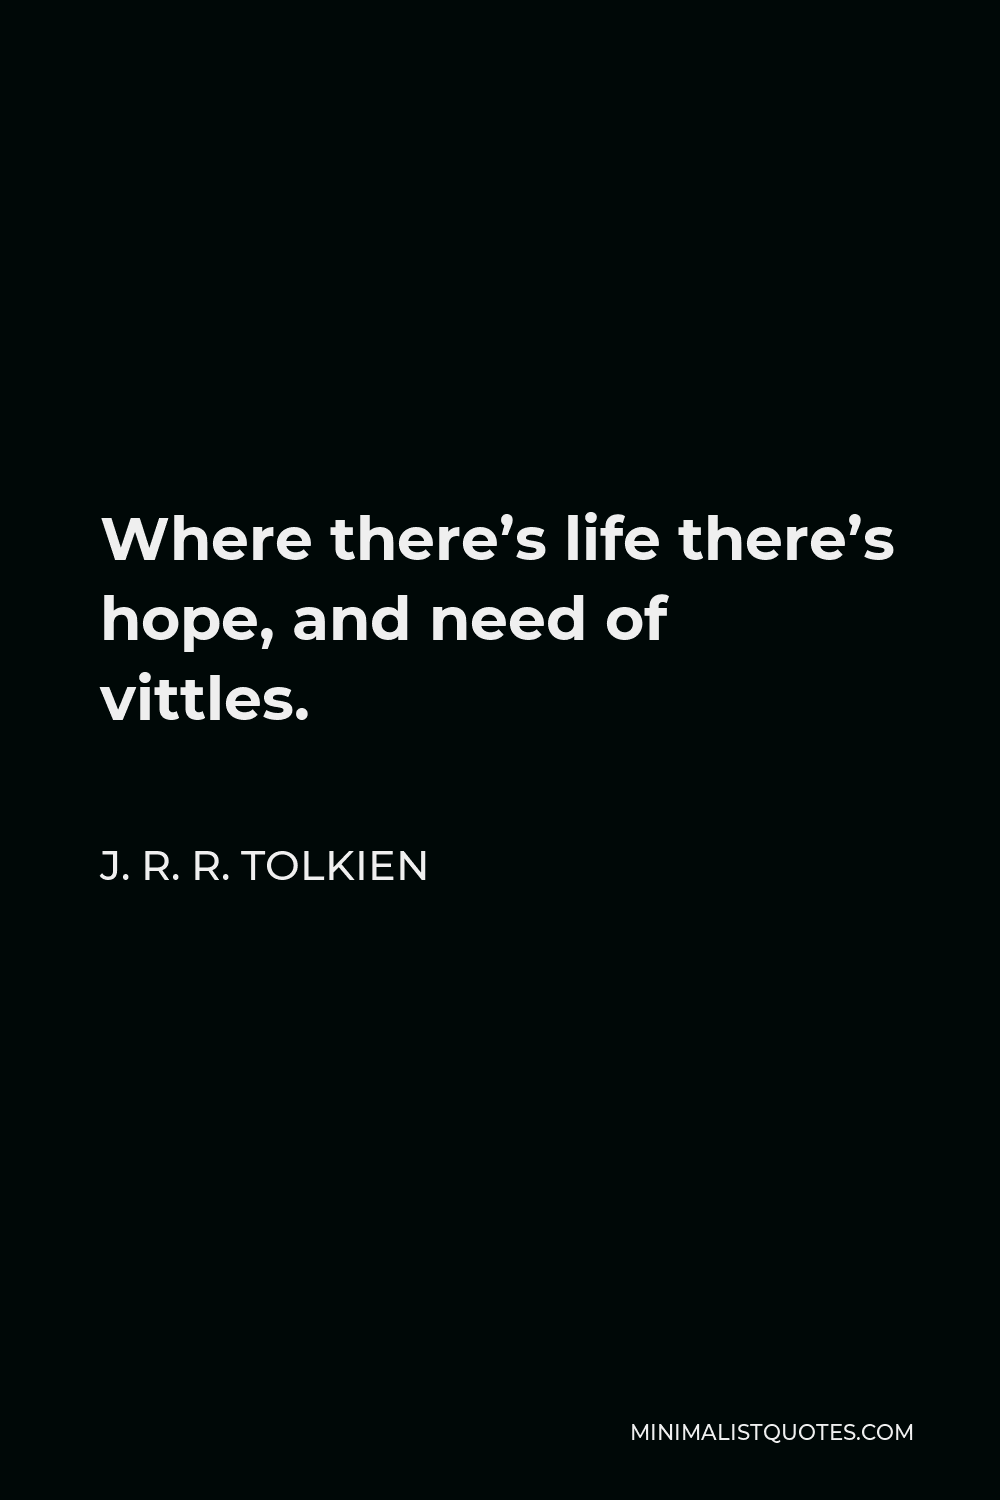 J. R. R. Tolkien Quote - Where there's life there's hope, and need of vittles.